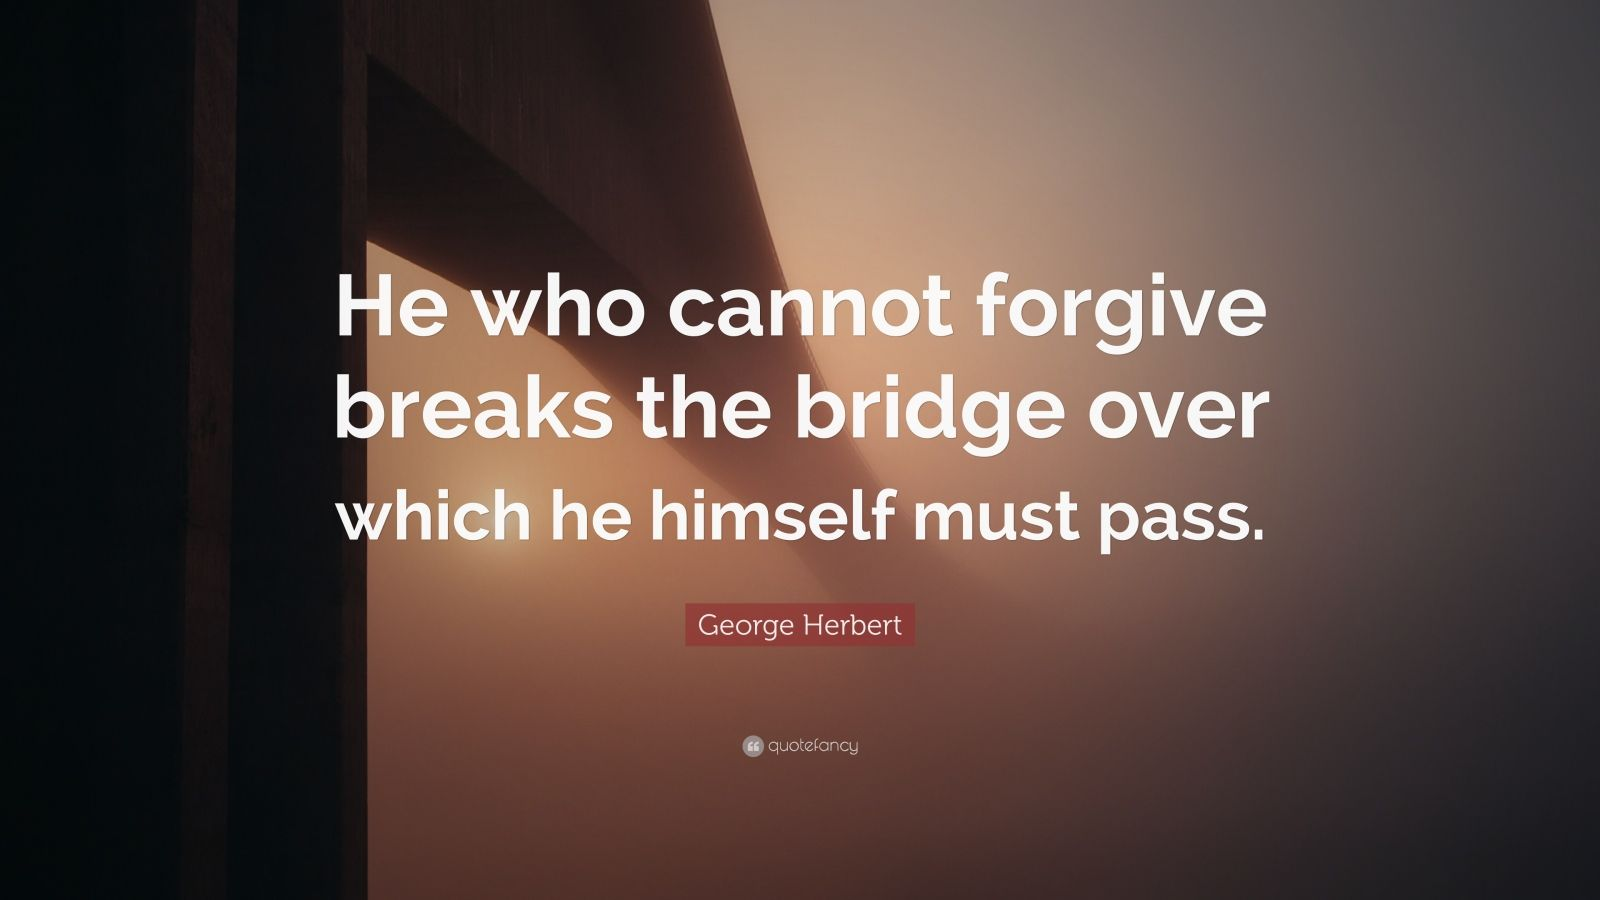 Relationship Quotes He Who Cannot Forgive Breaks The Bridge Over Which Himself Must